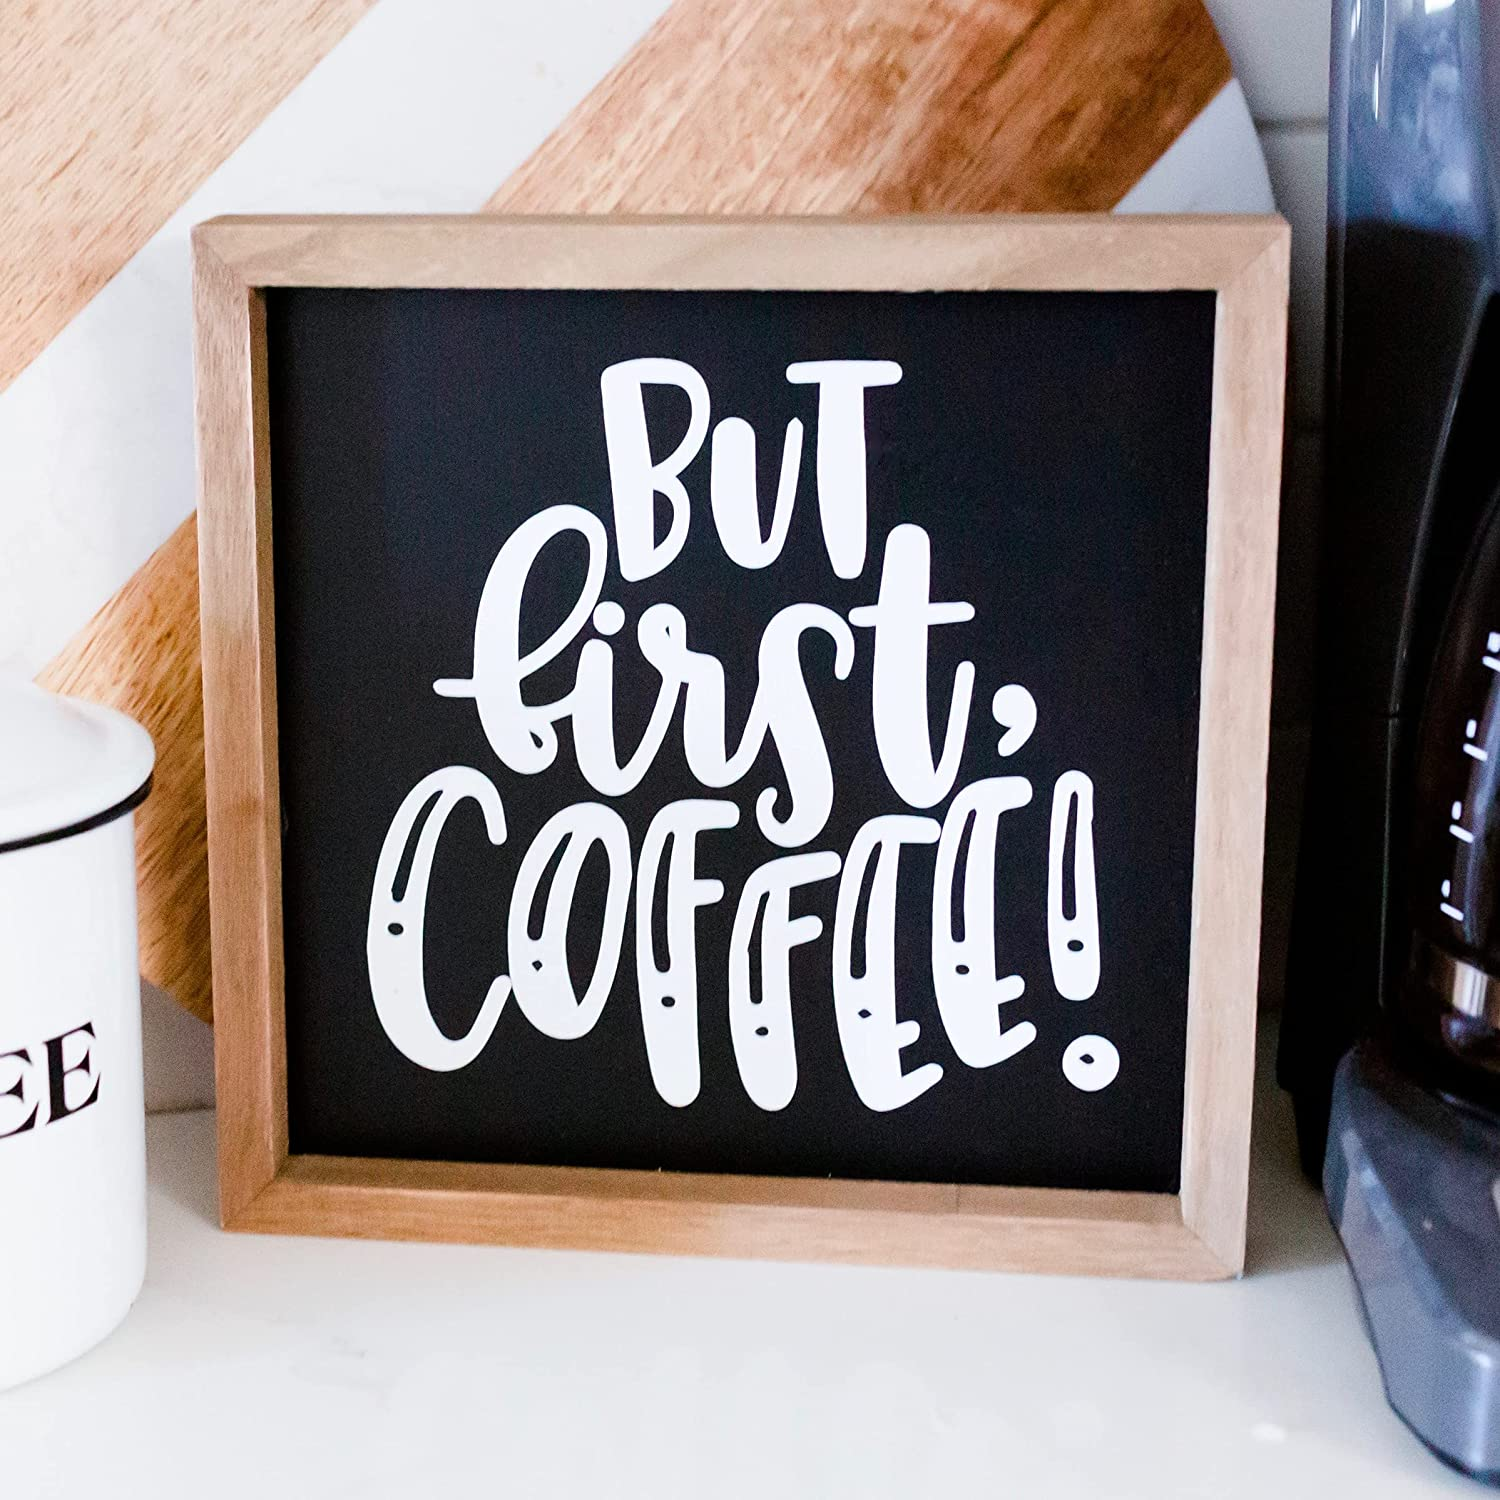 Coffee Sign   Coffee Bar Sign 9x9   Coffee Signs for Coffee Bar   Farmhouse Coffee Bar Decor   Farmhouse Coffee Bar Signs   Coffee Decor for Coffee Bar   Coffee Station Decor   But First Coffee Sign